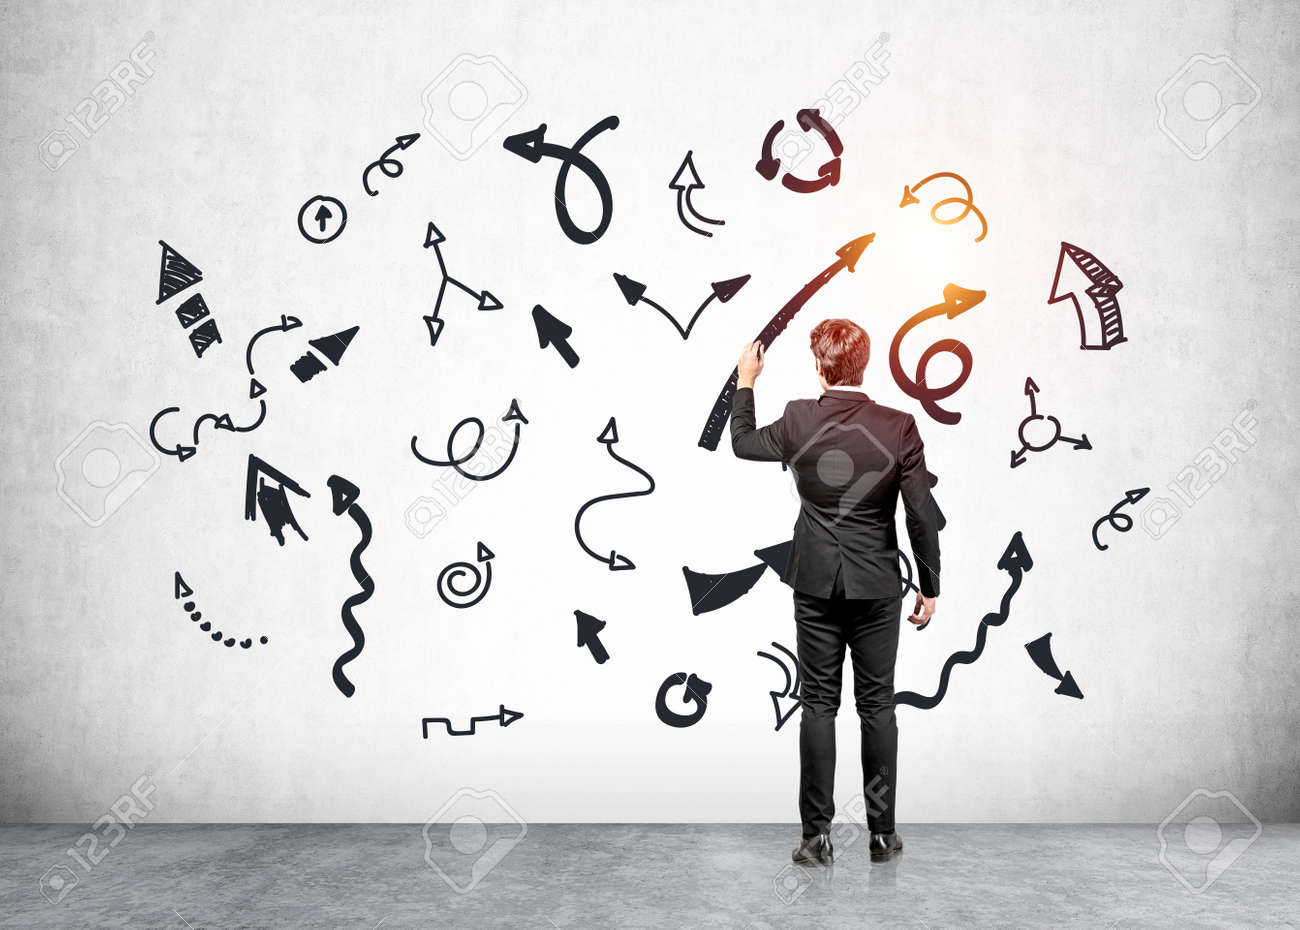 Office man in black suit holding pen, writing multiple lines and arrows with different direction, concrete floor. Concept of decision making and solution - 169807444